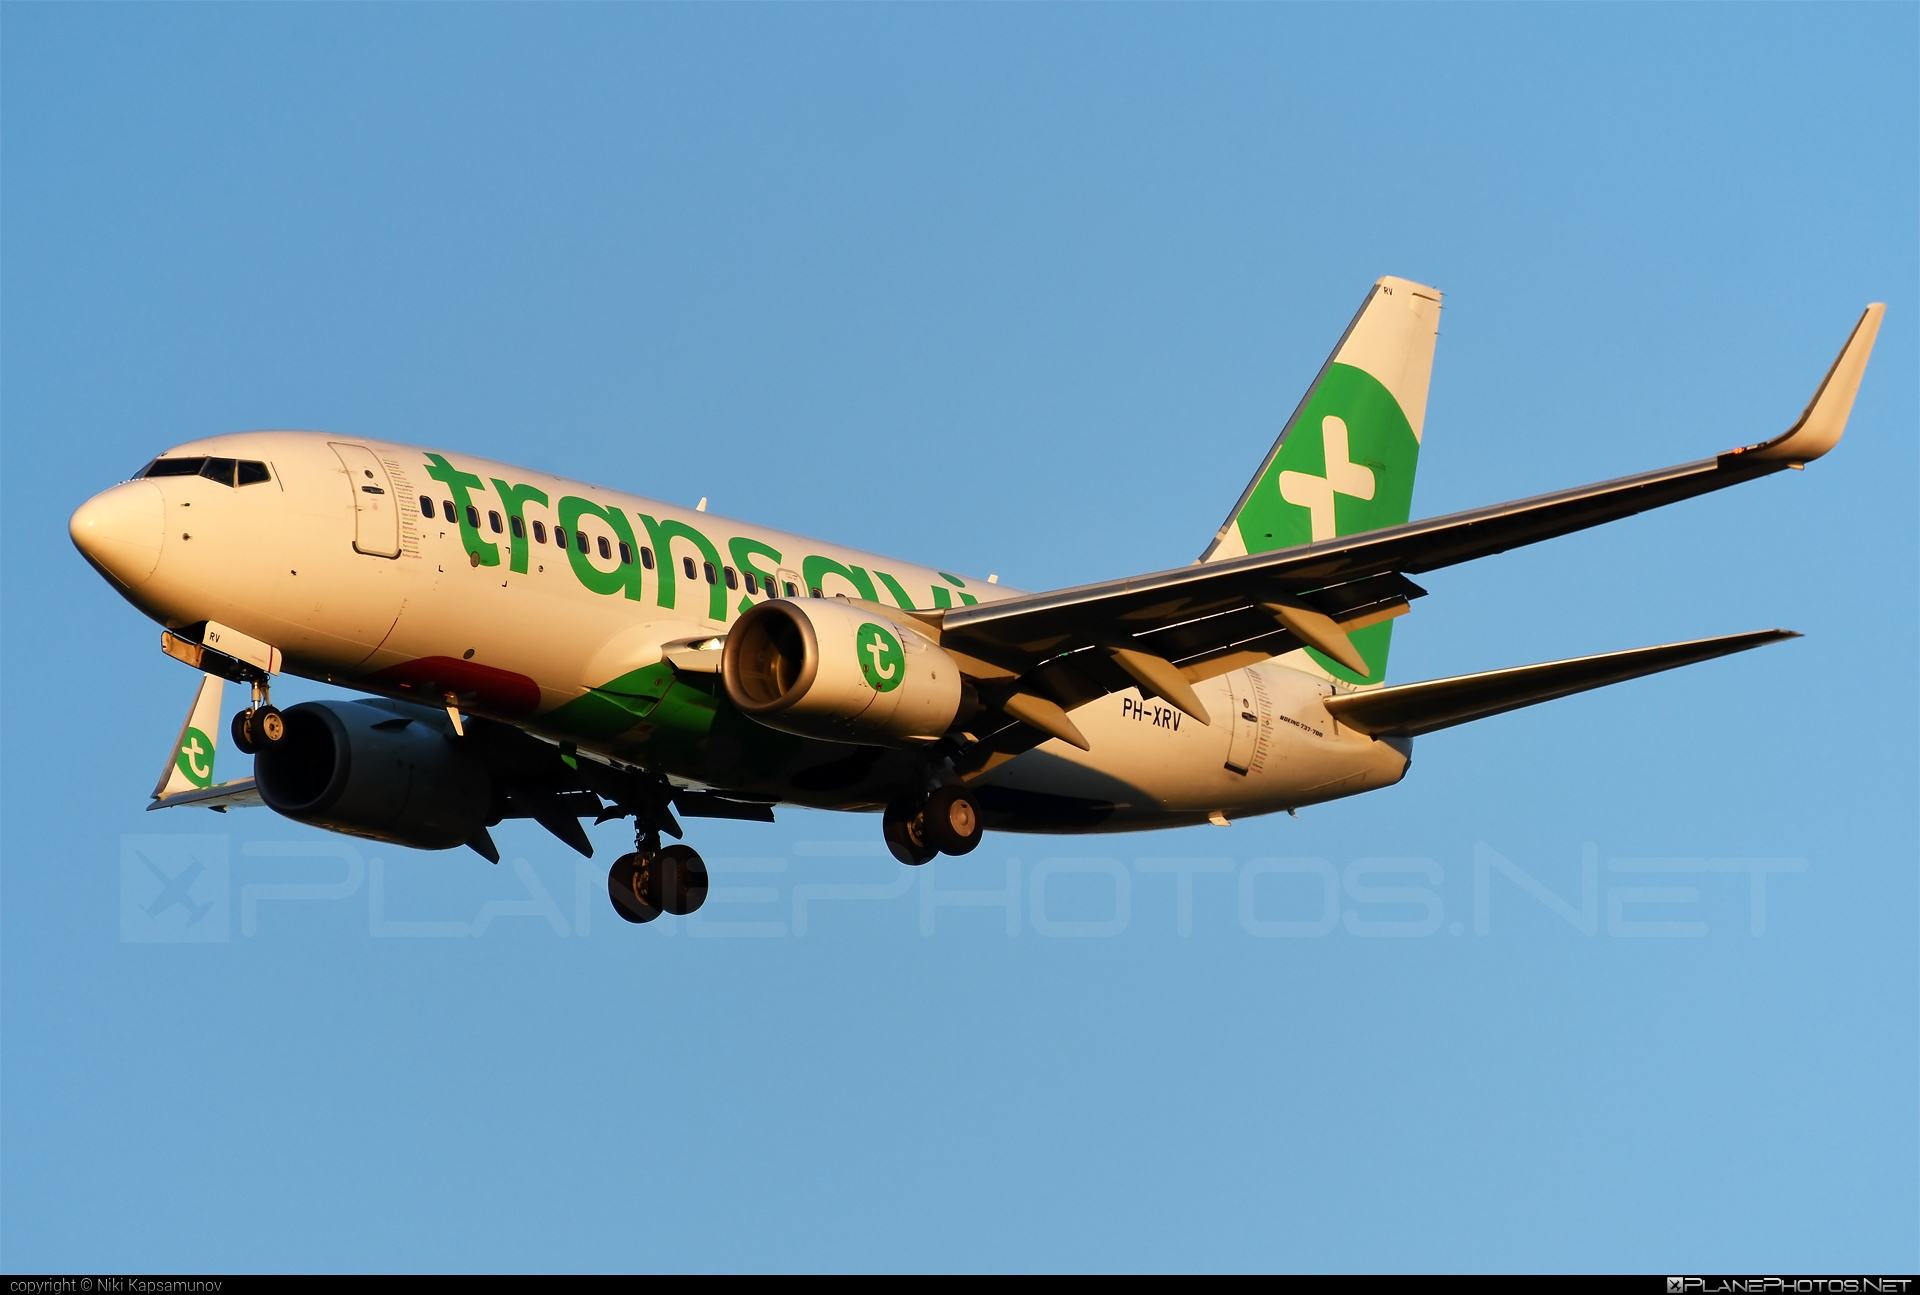 Boeing 737-700 - PH-XRV operated by Transavia Airlines #b737 #b737nextgen #b737ng #boeing #boeing737 #transavia #transaviaairlines